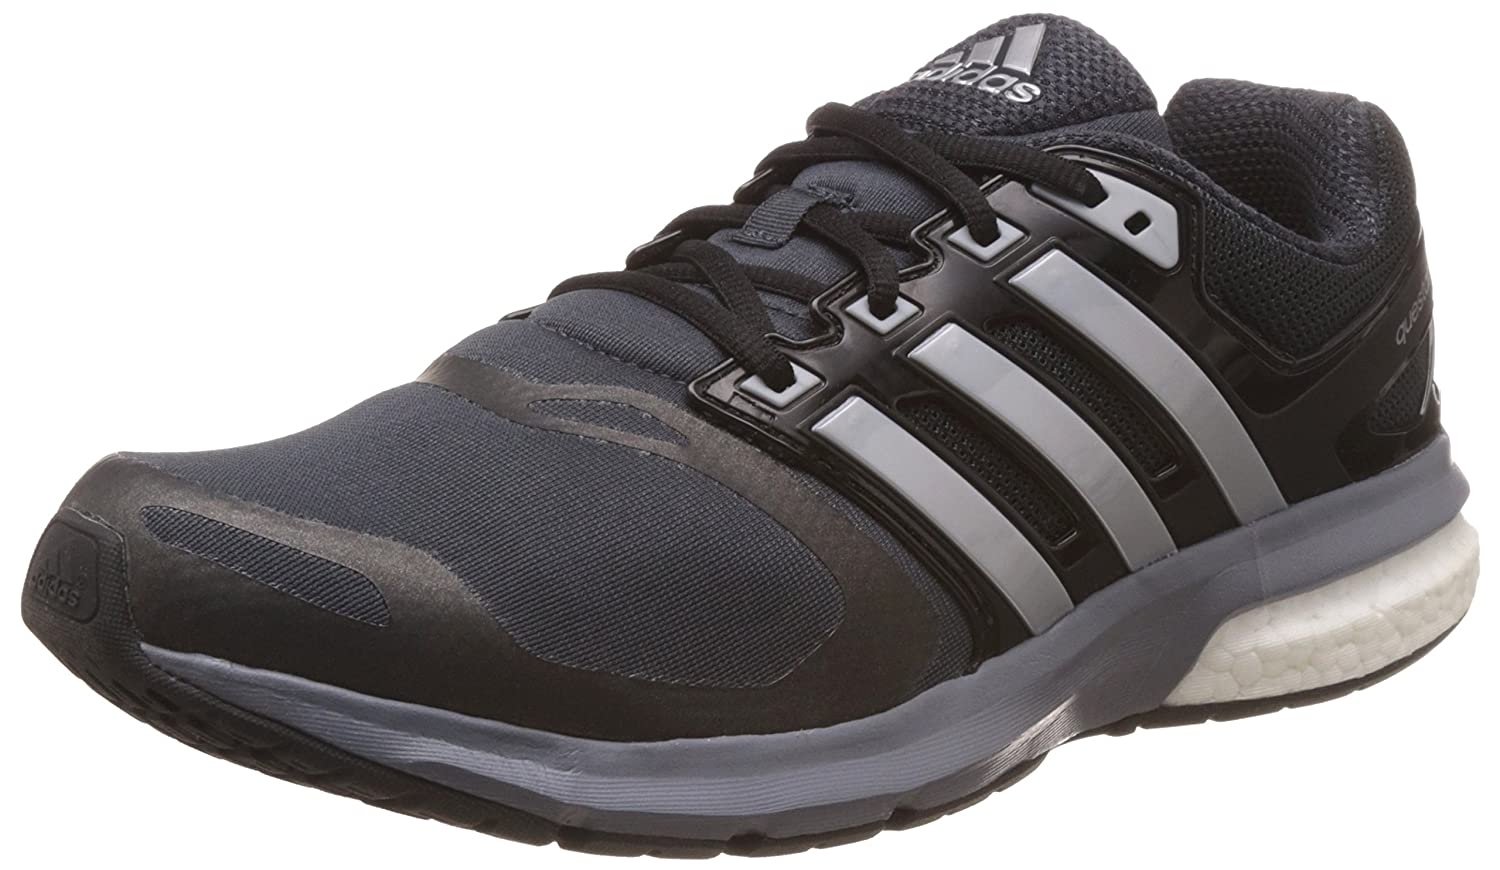 sale retailer 8c68f 4dabf Amazon.com   adidas Mens Questar Boost TF Running Trainers Sneakers Shoes  (UK 8 US 8.5 EU 42, Black Silver White AQ6632)   Road Running